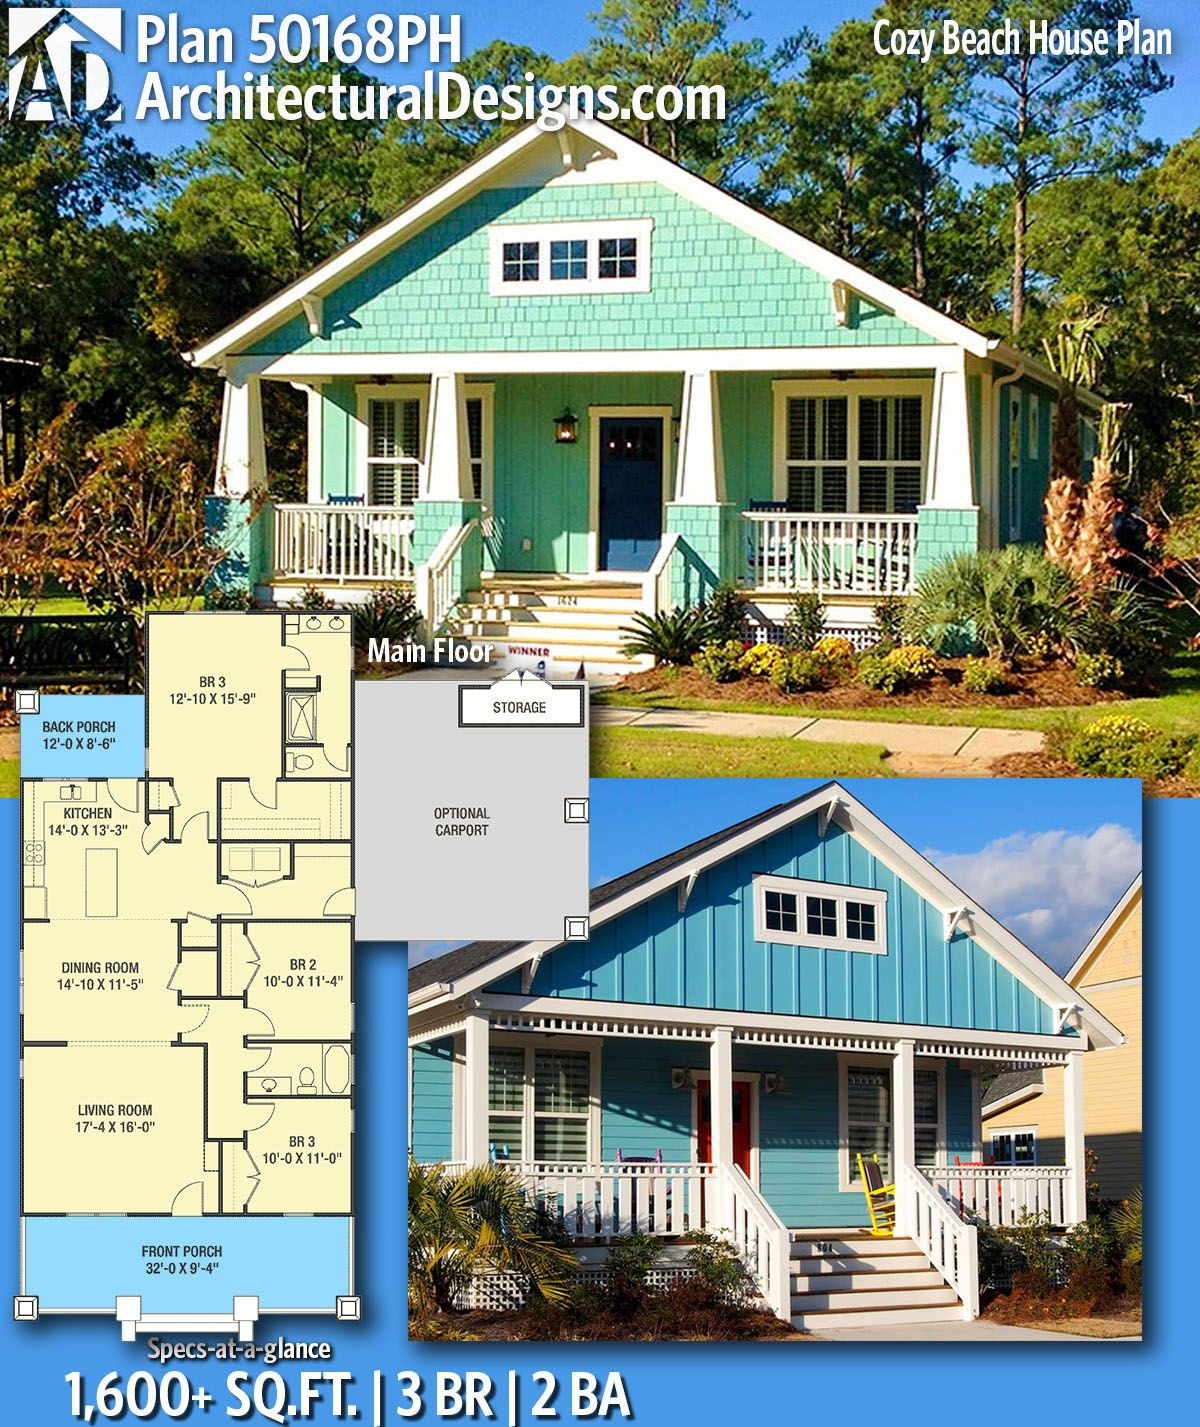 Plan 50168PH: Cozy Beach House Plan with Optional Carport in ... on lighthouse home plans, apartment plans, houses built on stilts plans, commercial building plans, greenhouse plans, floor plans, garage plans, ocean front home plans, flood zone home plans, beach cottage, rustic home plans, beach wood plank flooring, comfortable home plans, townhouse plans, beach houses for rent, luxury home plans, beach hotels, beach homes, beach bedroom, key west cottage plans,